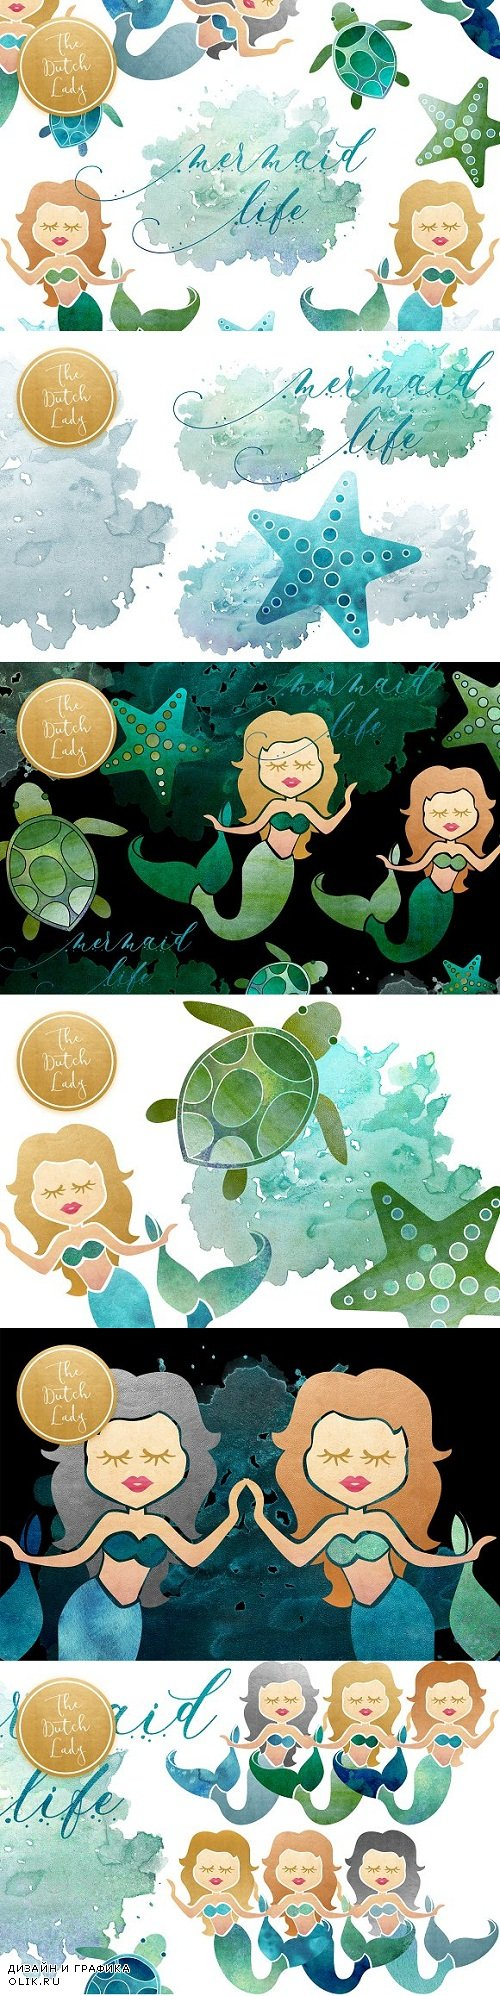 Mermaid & Sealife Clipart Set - 2813925